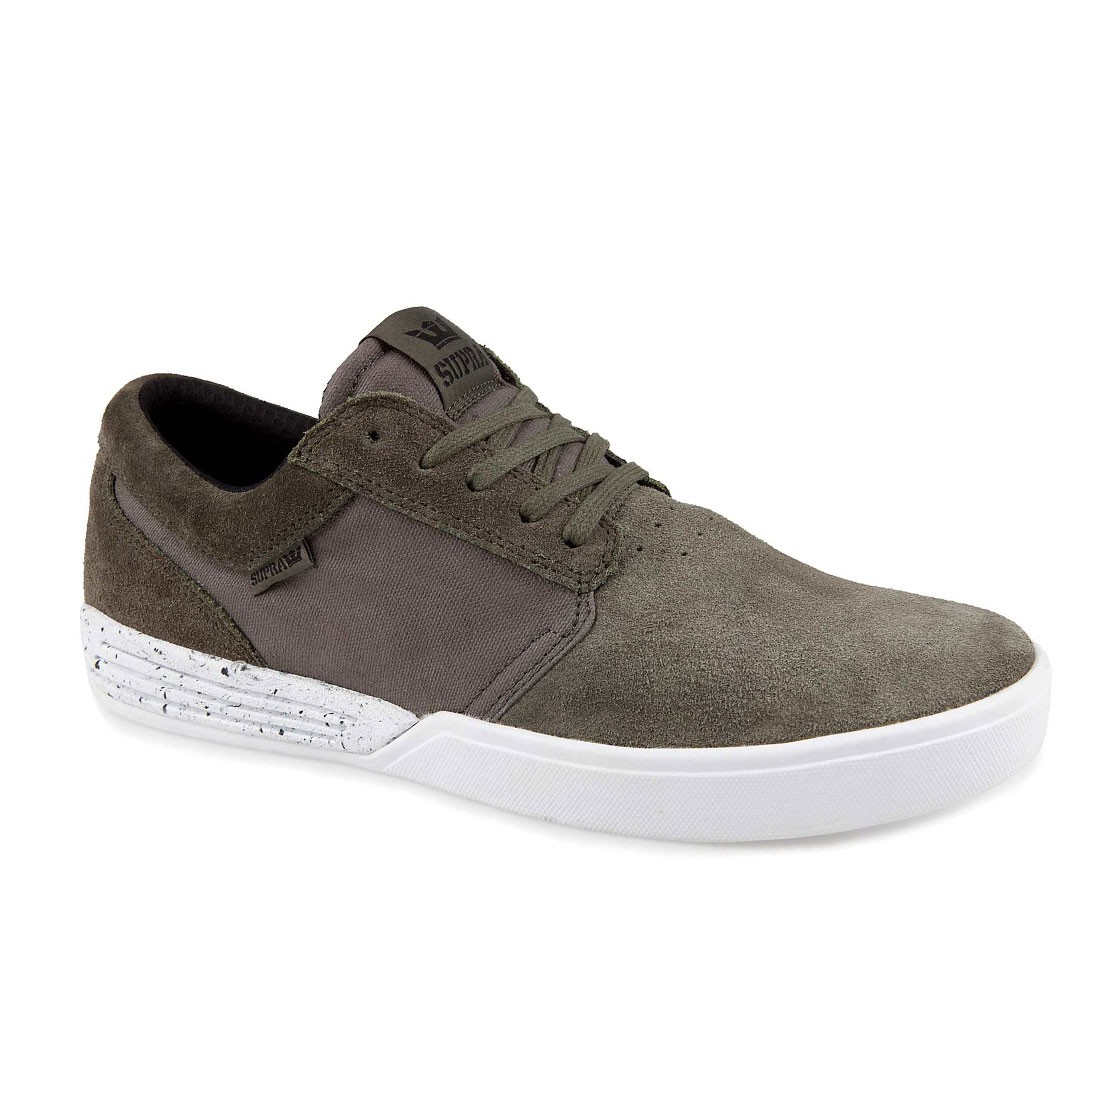 HAMMER dusty olive off white